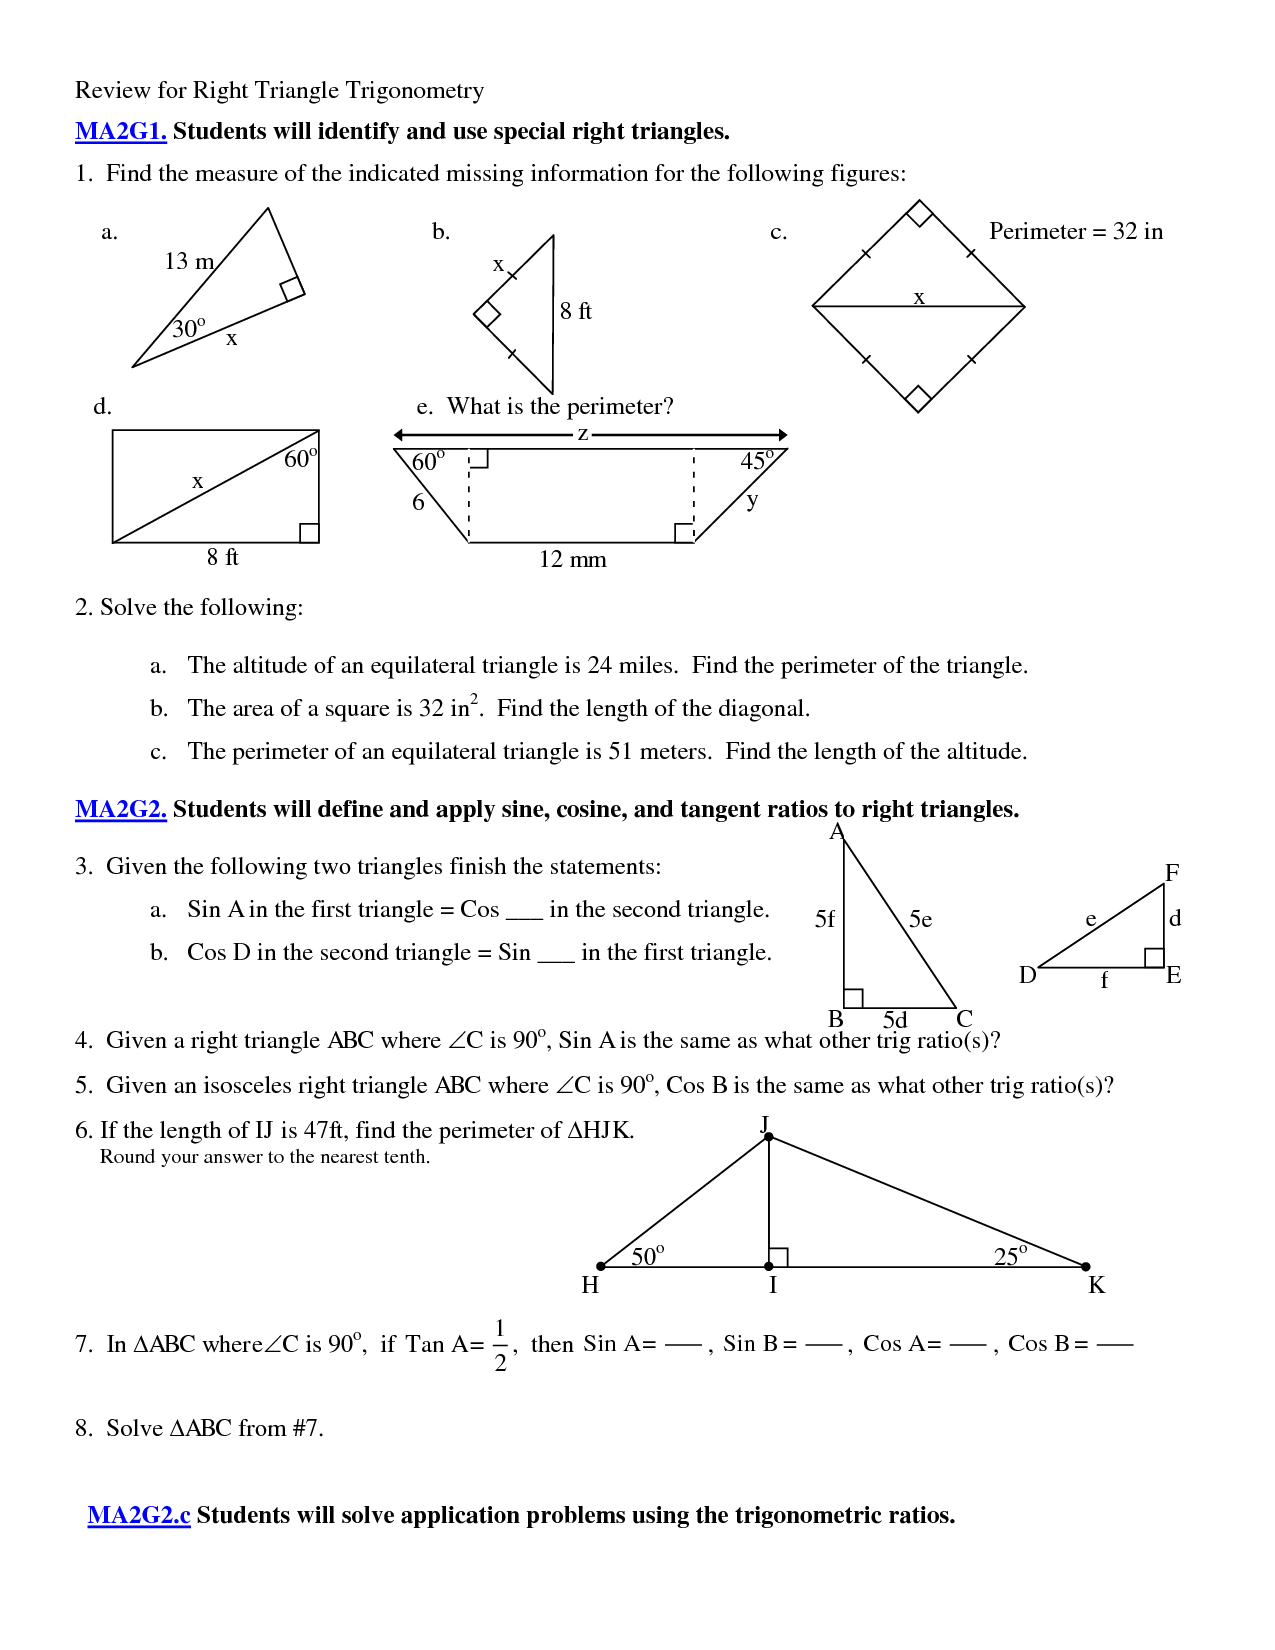 5 Best Images of Applications Of Trigonometry Worksheet  Graph Trig Functions Worksheet, Right